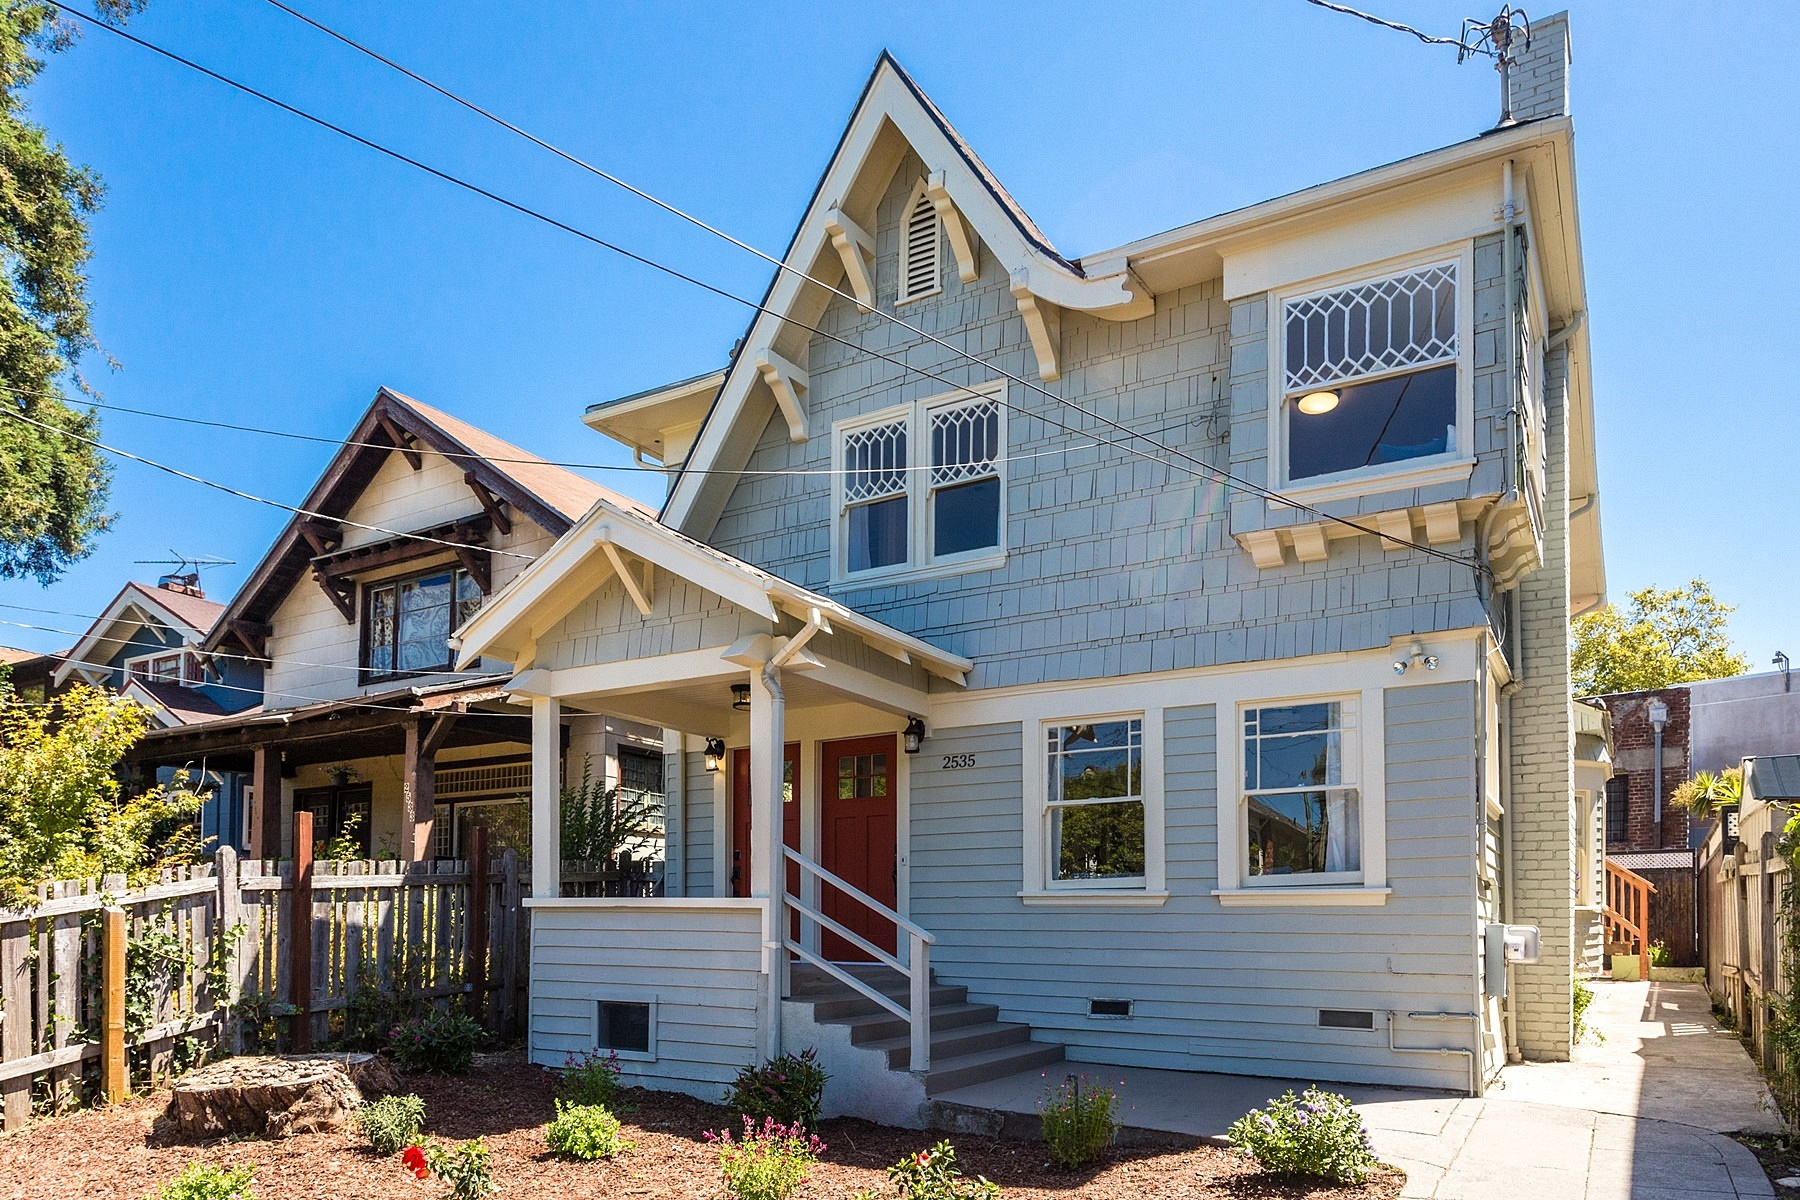 Additional photo for property listing at Charming And Sunny Duplex 2535 Chilton Way Berkeley, Kalifornien 94707 Vereinigte Staaten